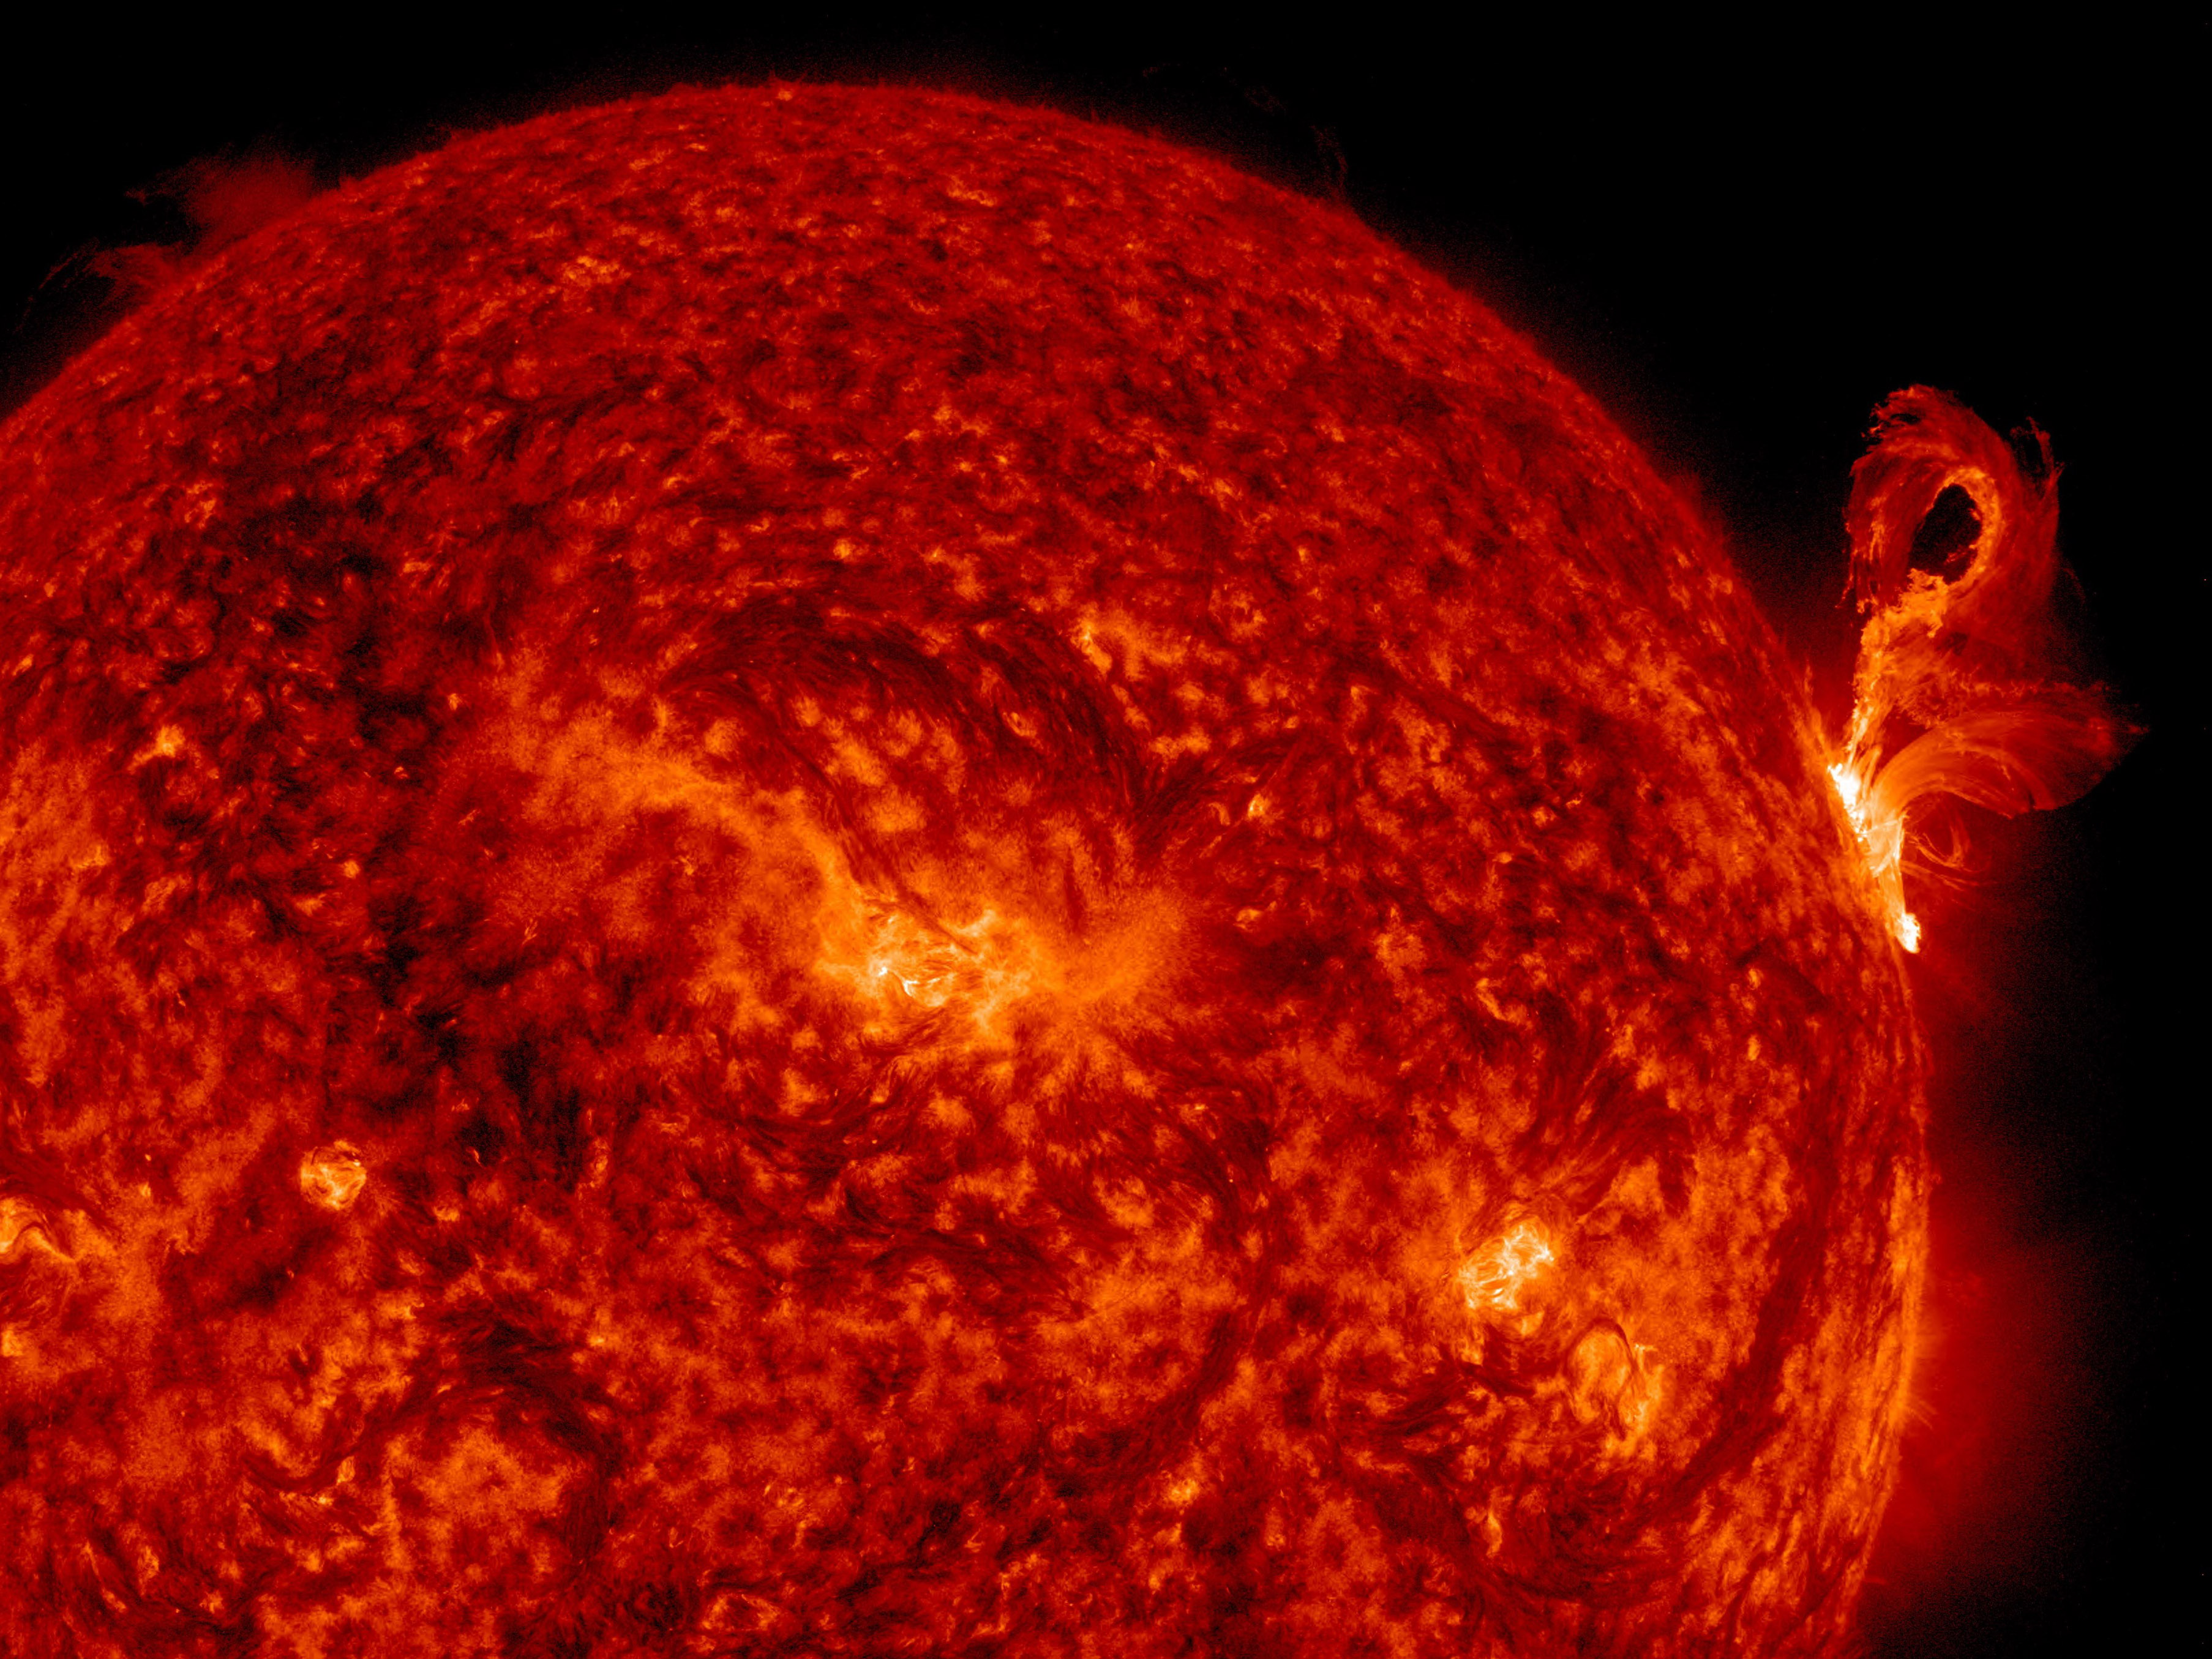 Eruption of solar material off the surface of the sun.